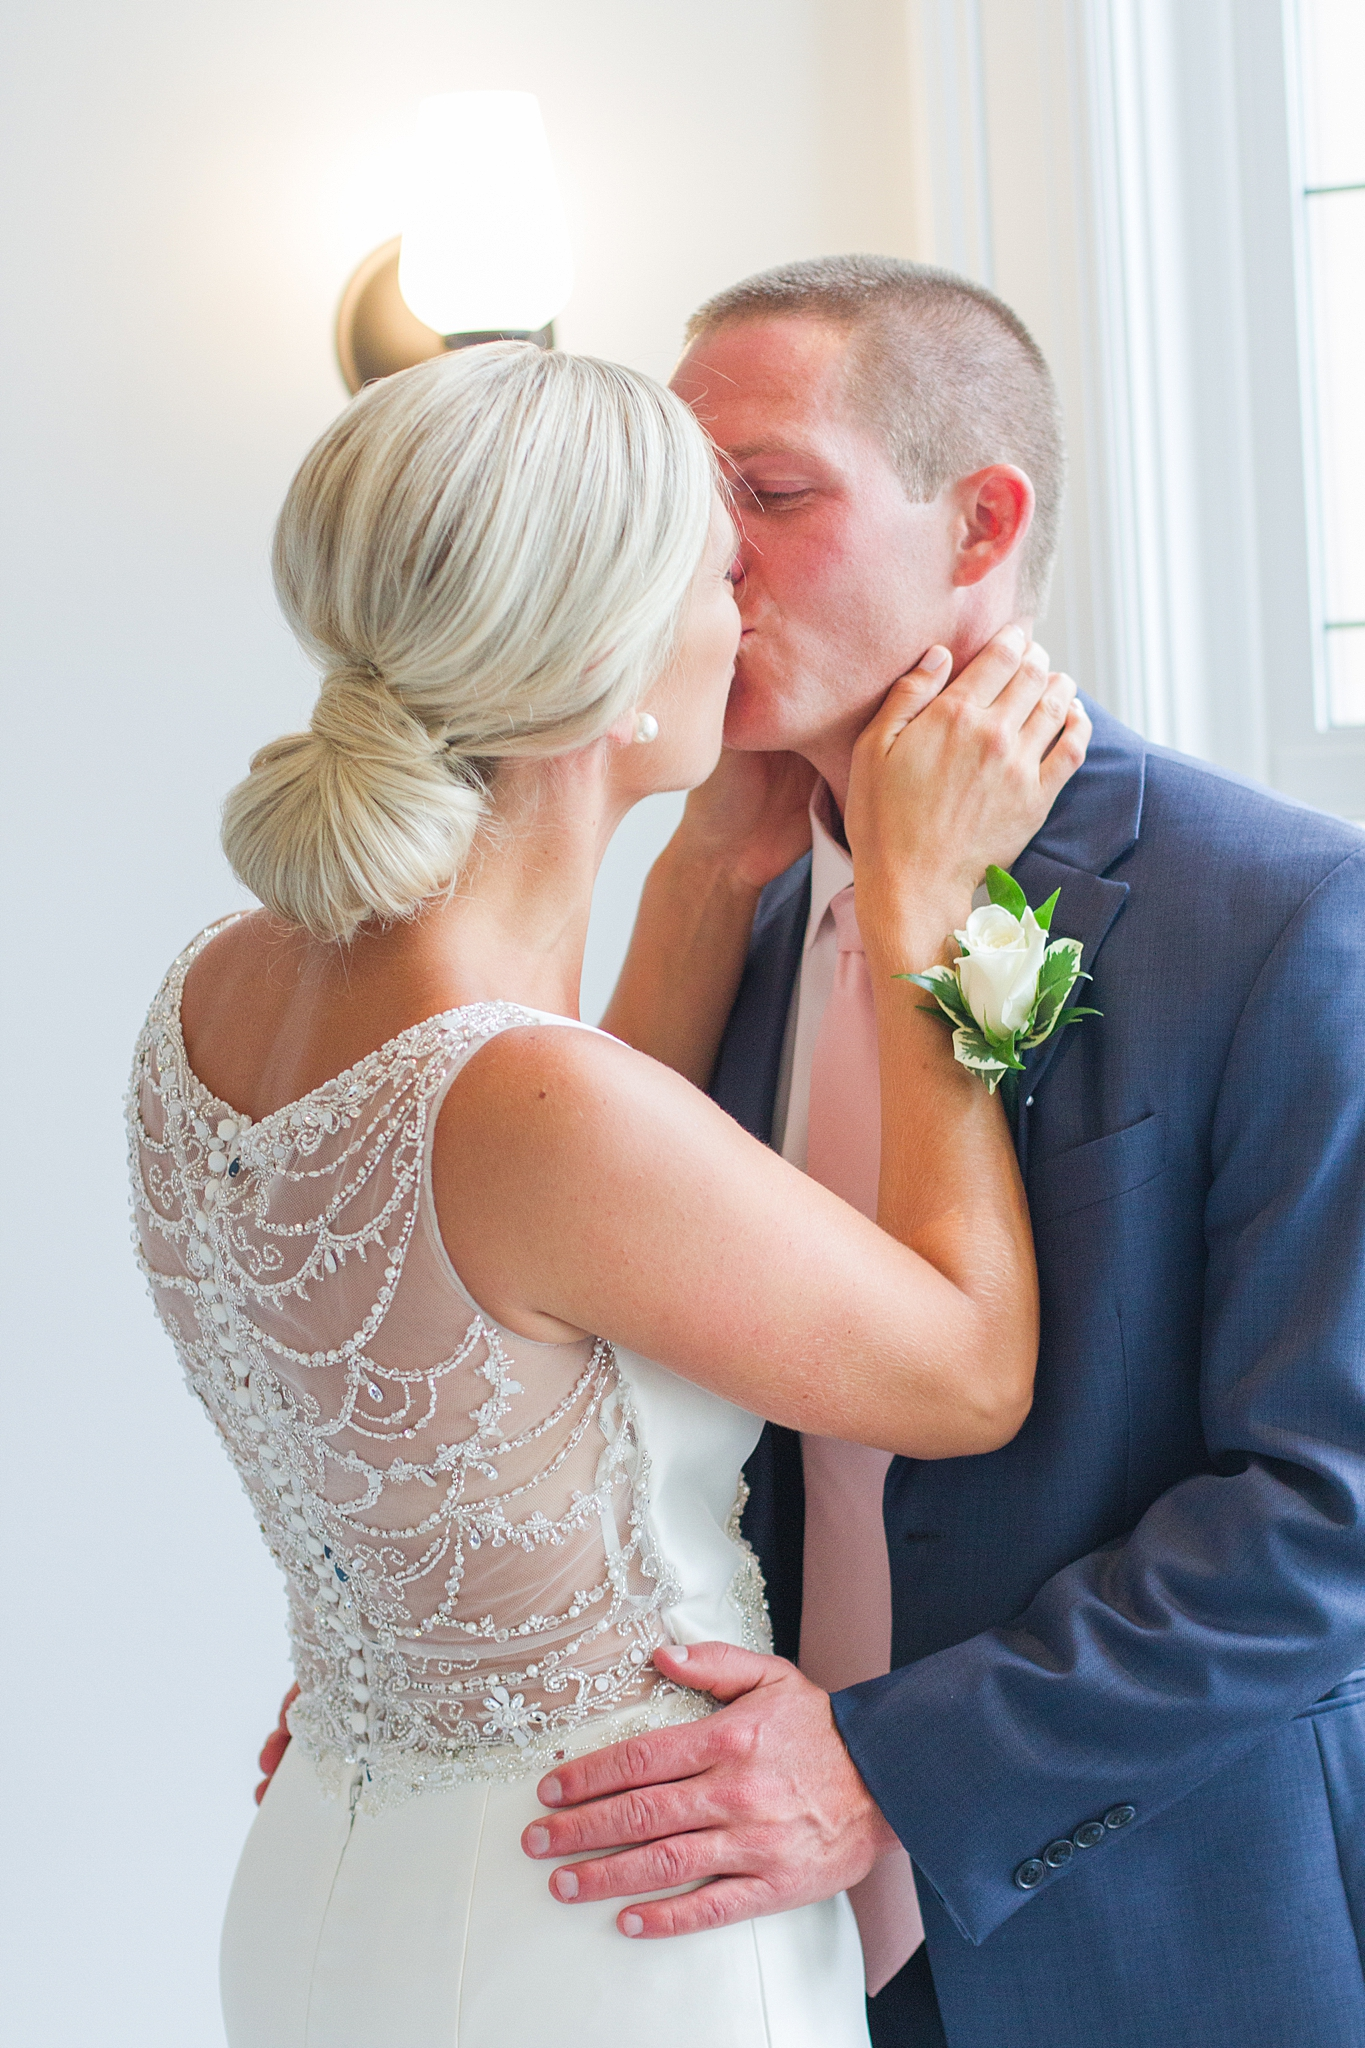 chapman-house-casually-chic-wedding-photography-in-rochester-michigan-by-courtney-carolyn-photography_0013.jpg